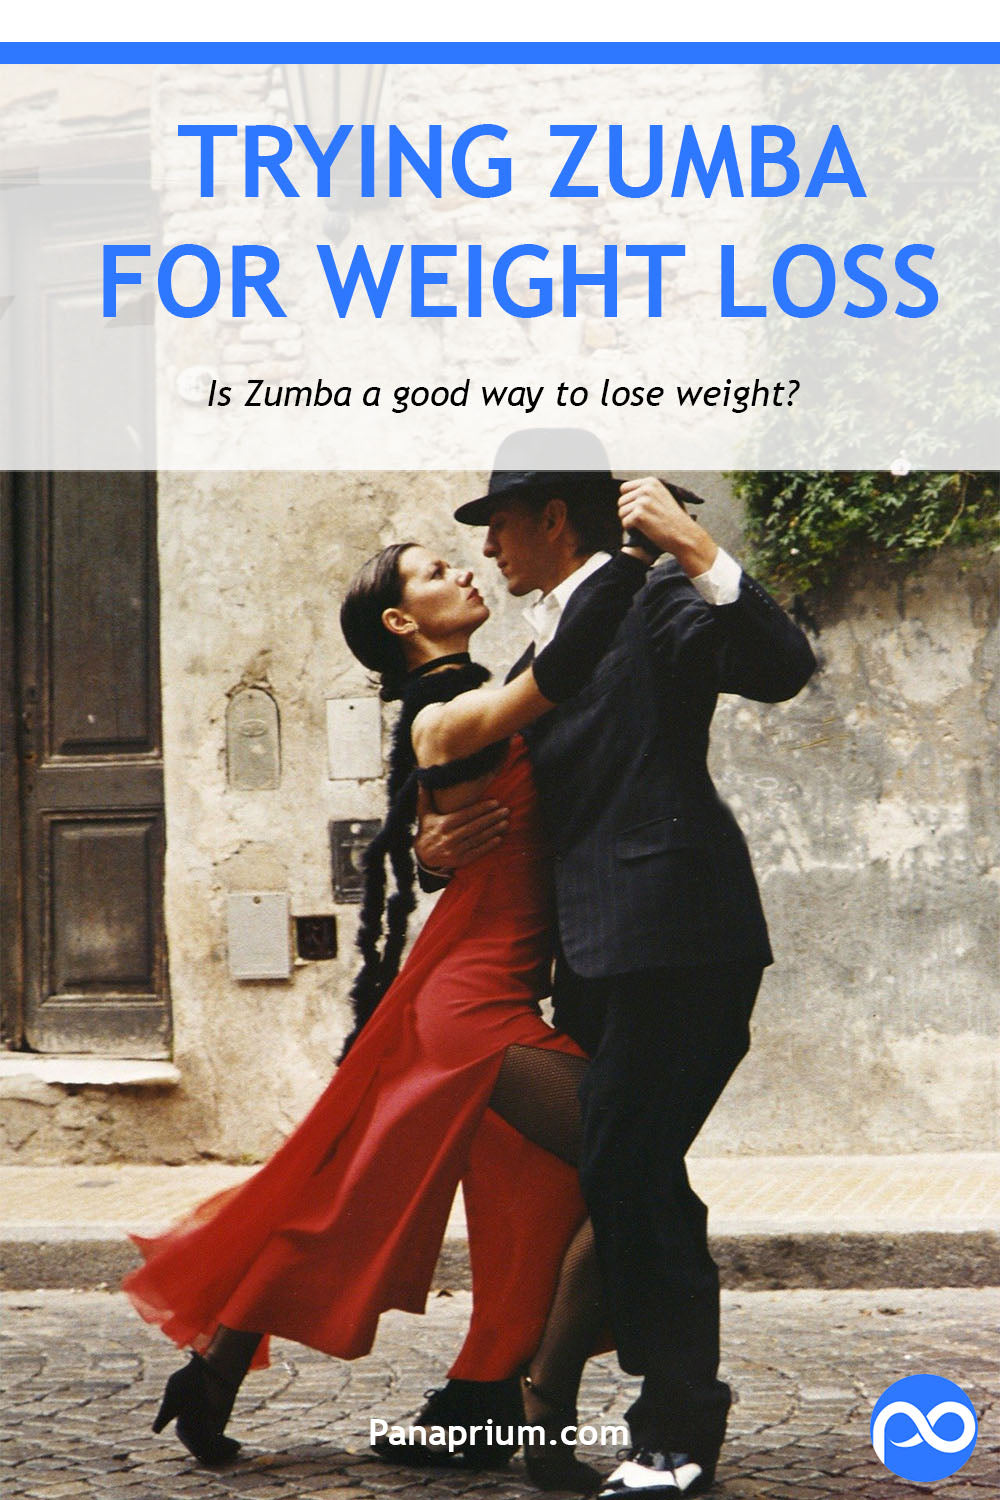 zumba weight loss pin